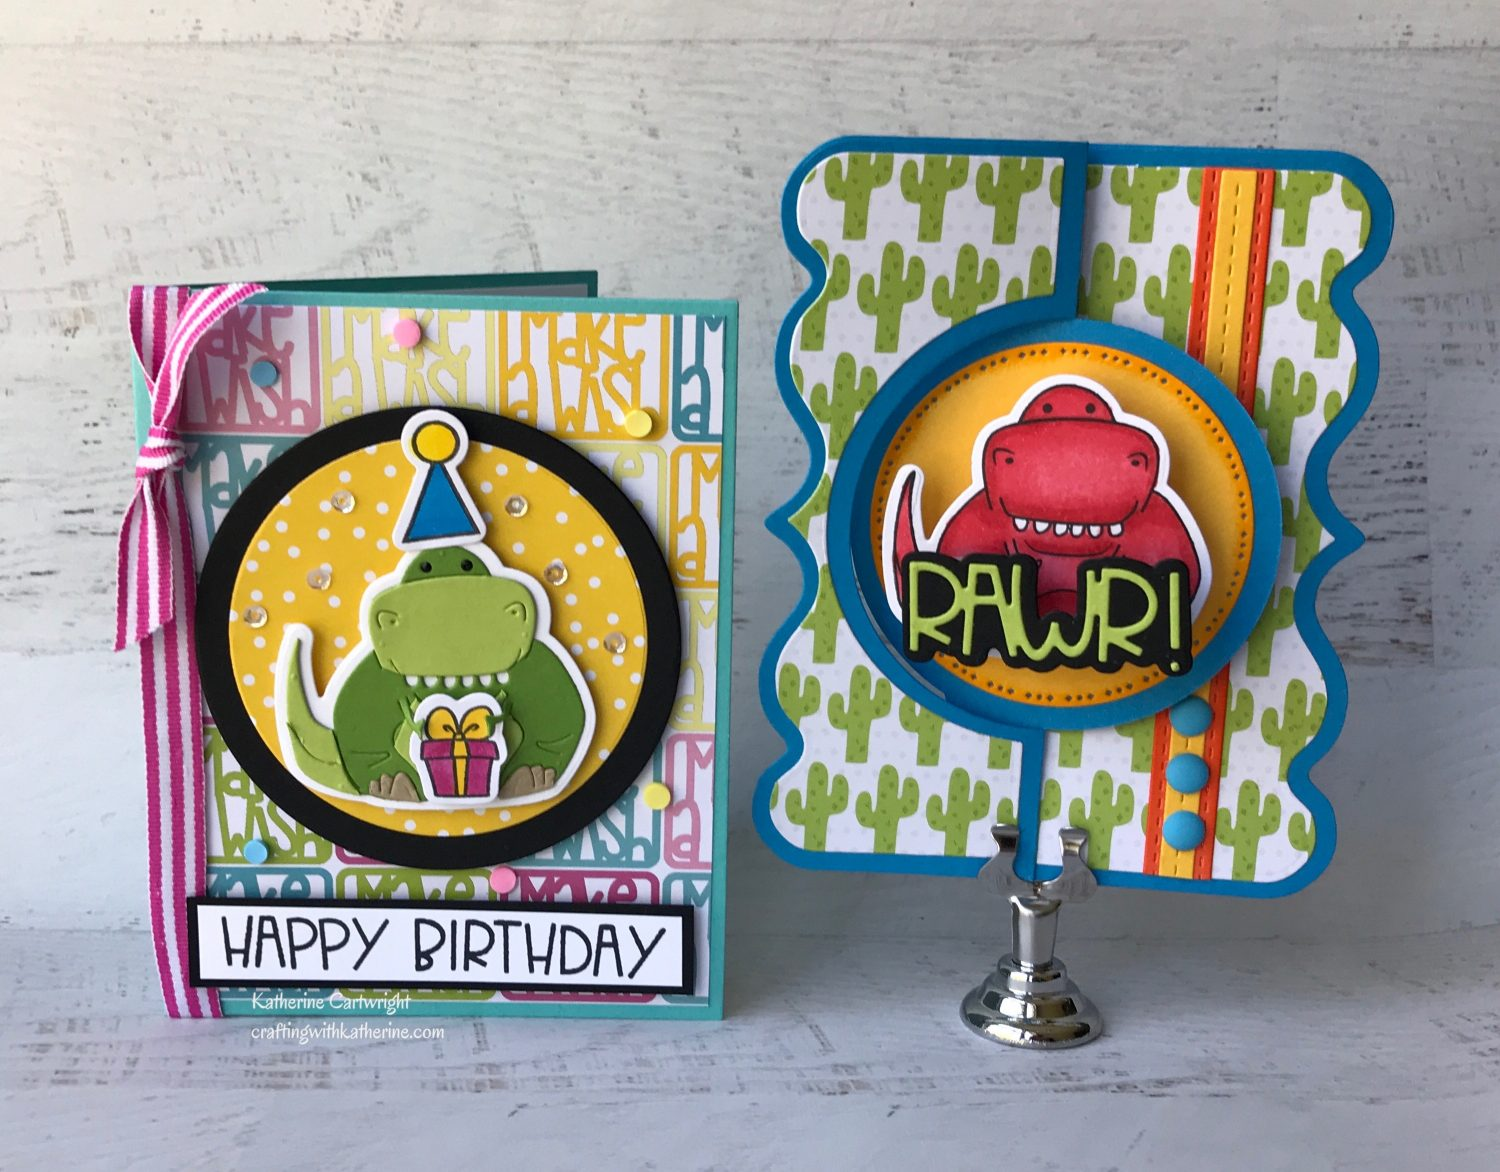 Dino Pudgie and Lotsofbirthday2stamp featuring The Stamps of Life